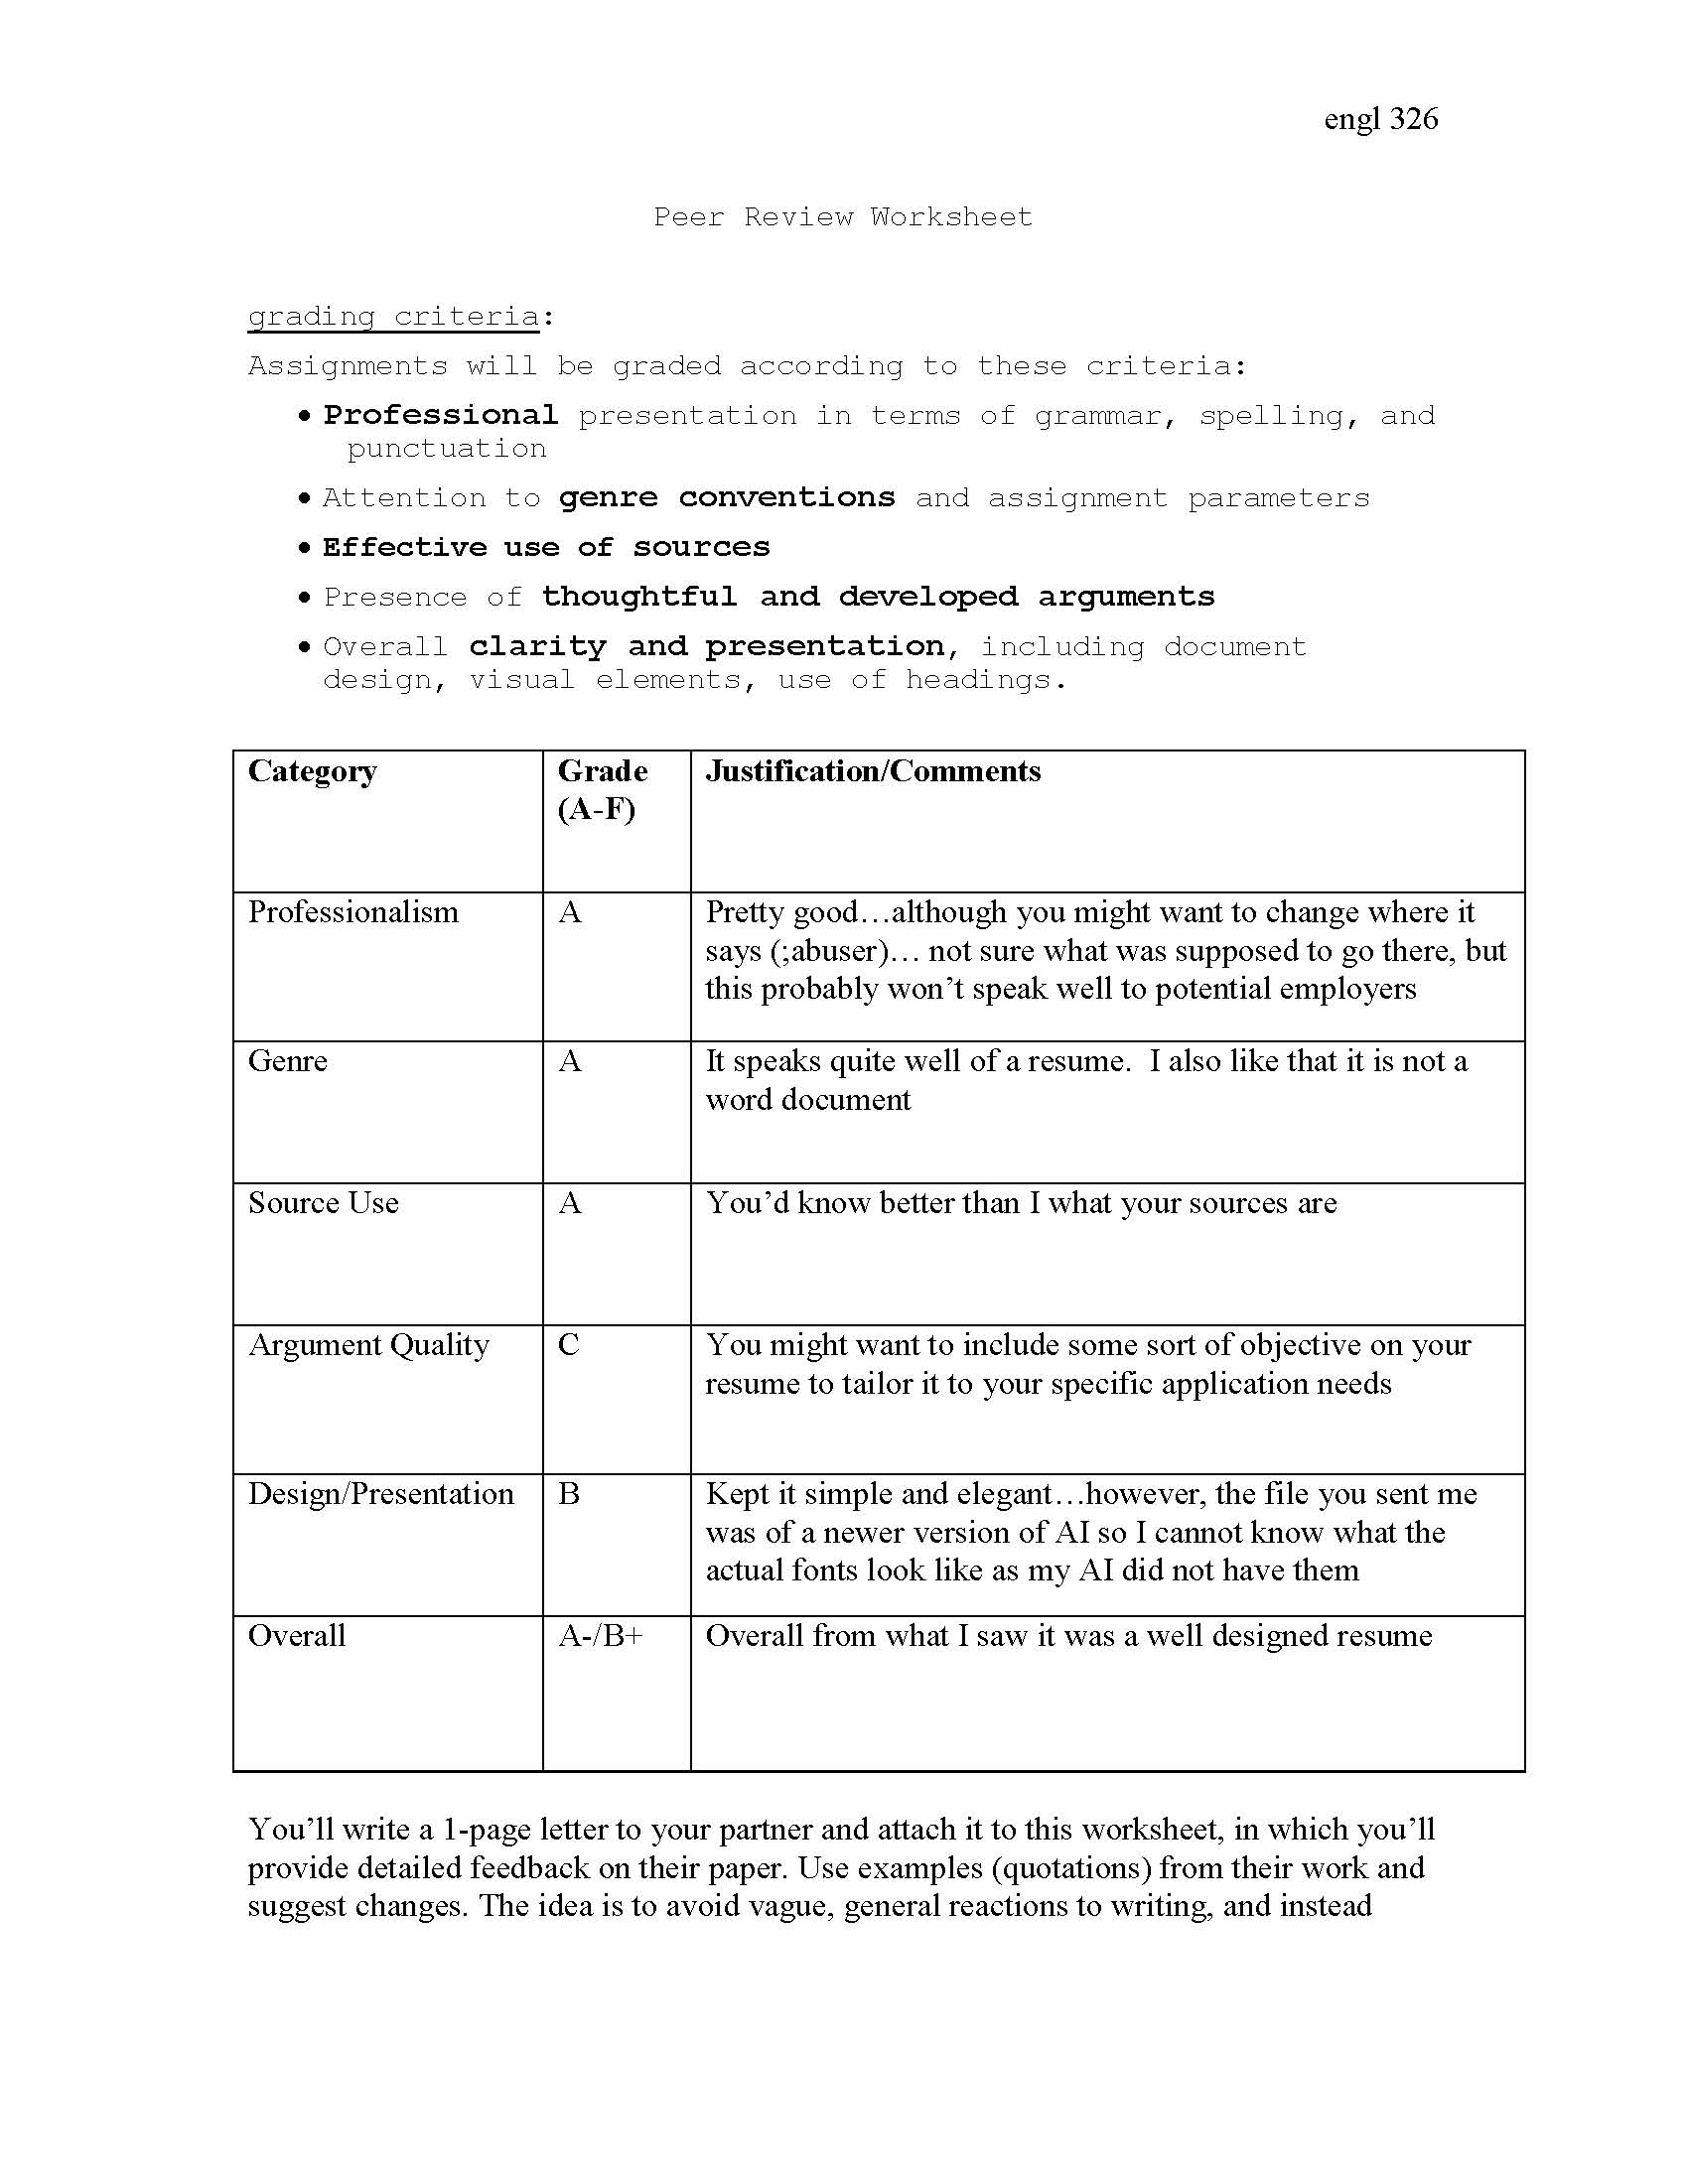 Worksheets Peer Review Worksheet Bumdig Free Worksheets